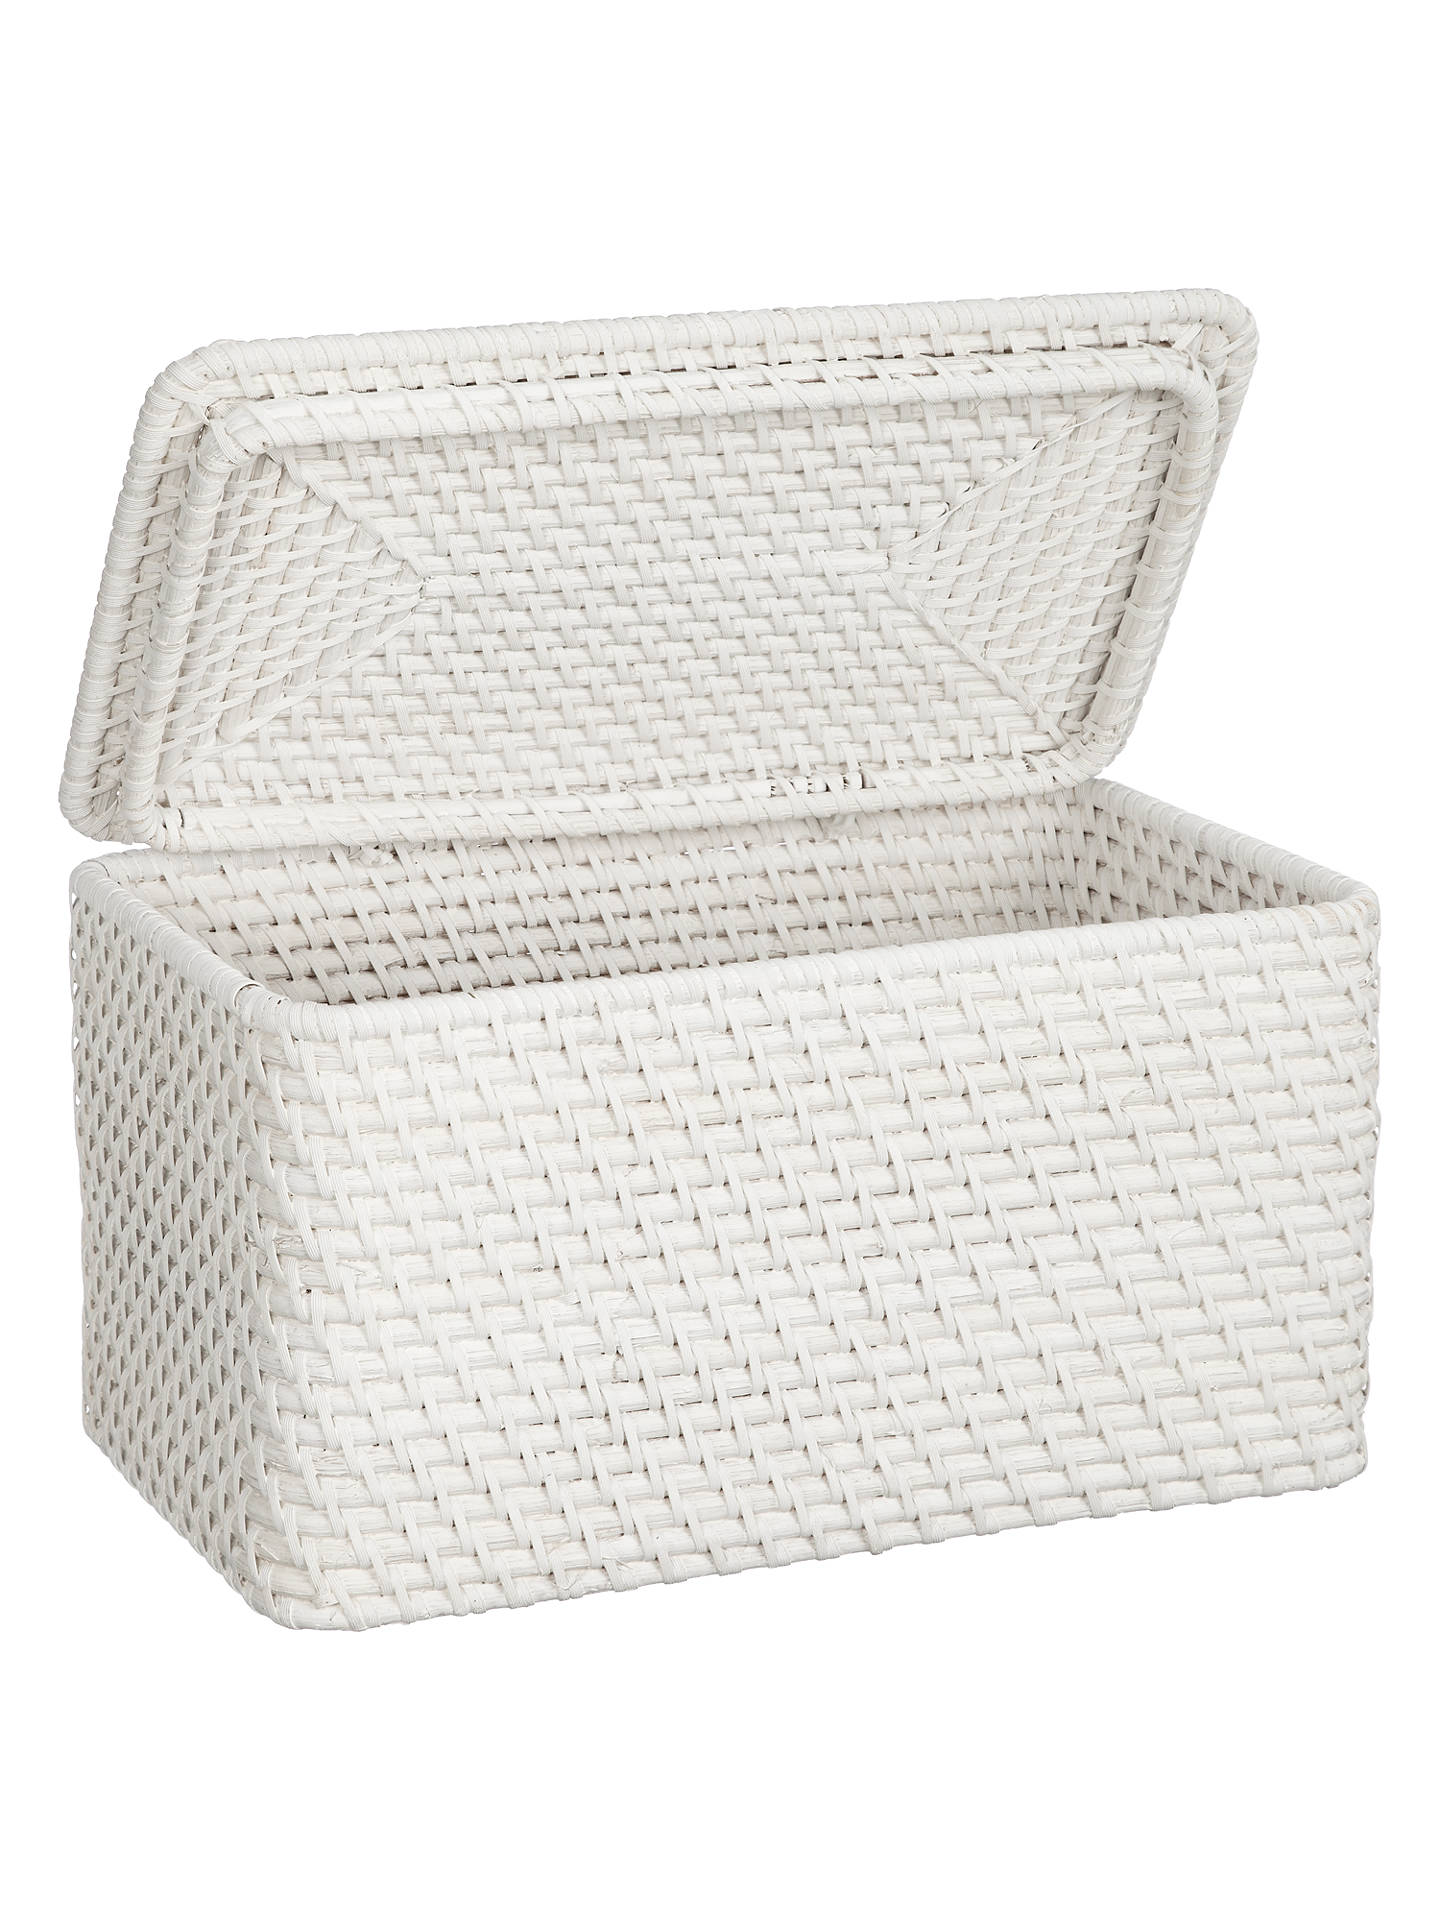 Merveilleux ... BuyJohn Lewis Croft Collection Rattan Lidded Storage Box, White Online  At Johnlewis.com ...